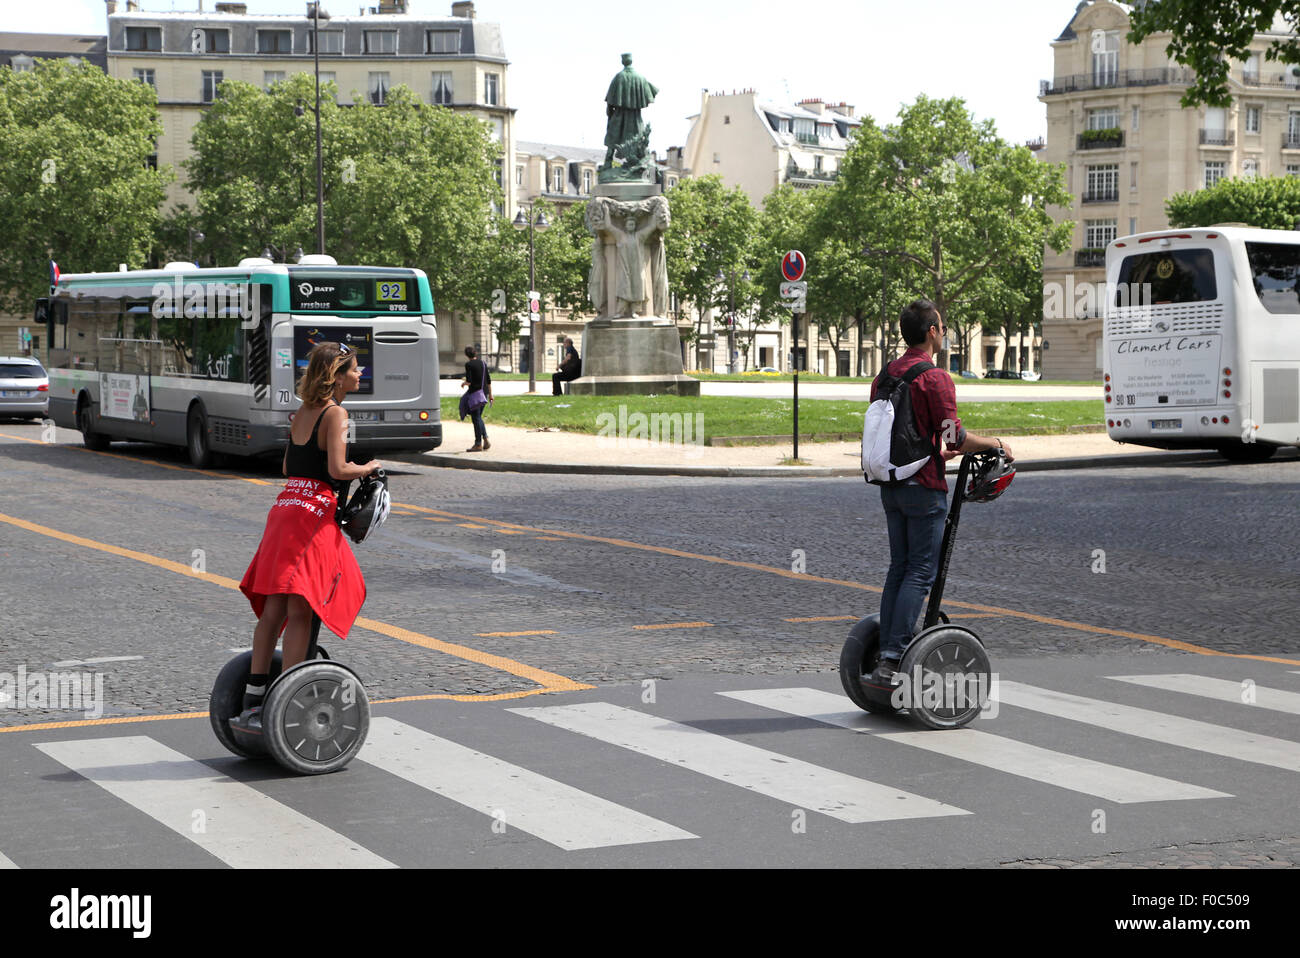 Segway crosswalk two people on segways crossing a road in Paris France - Stock Image